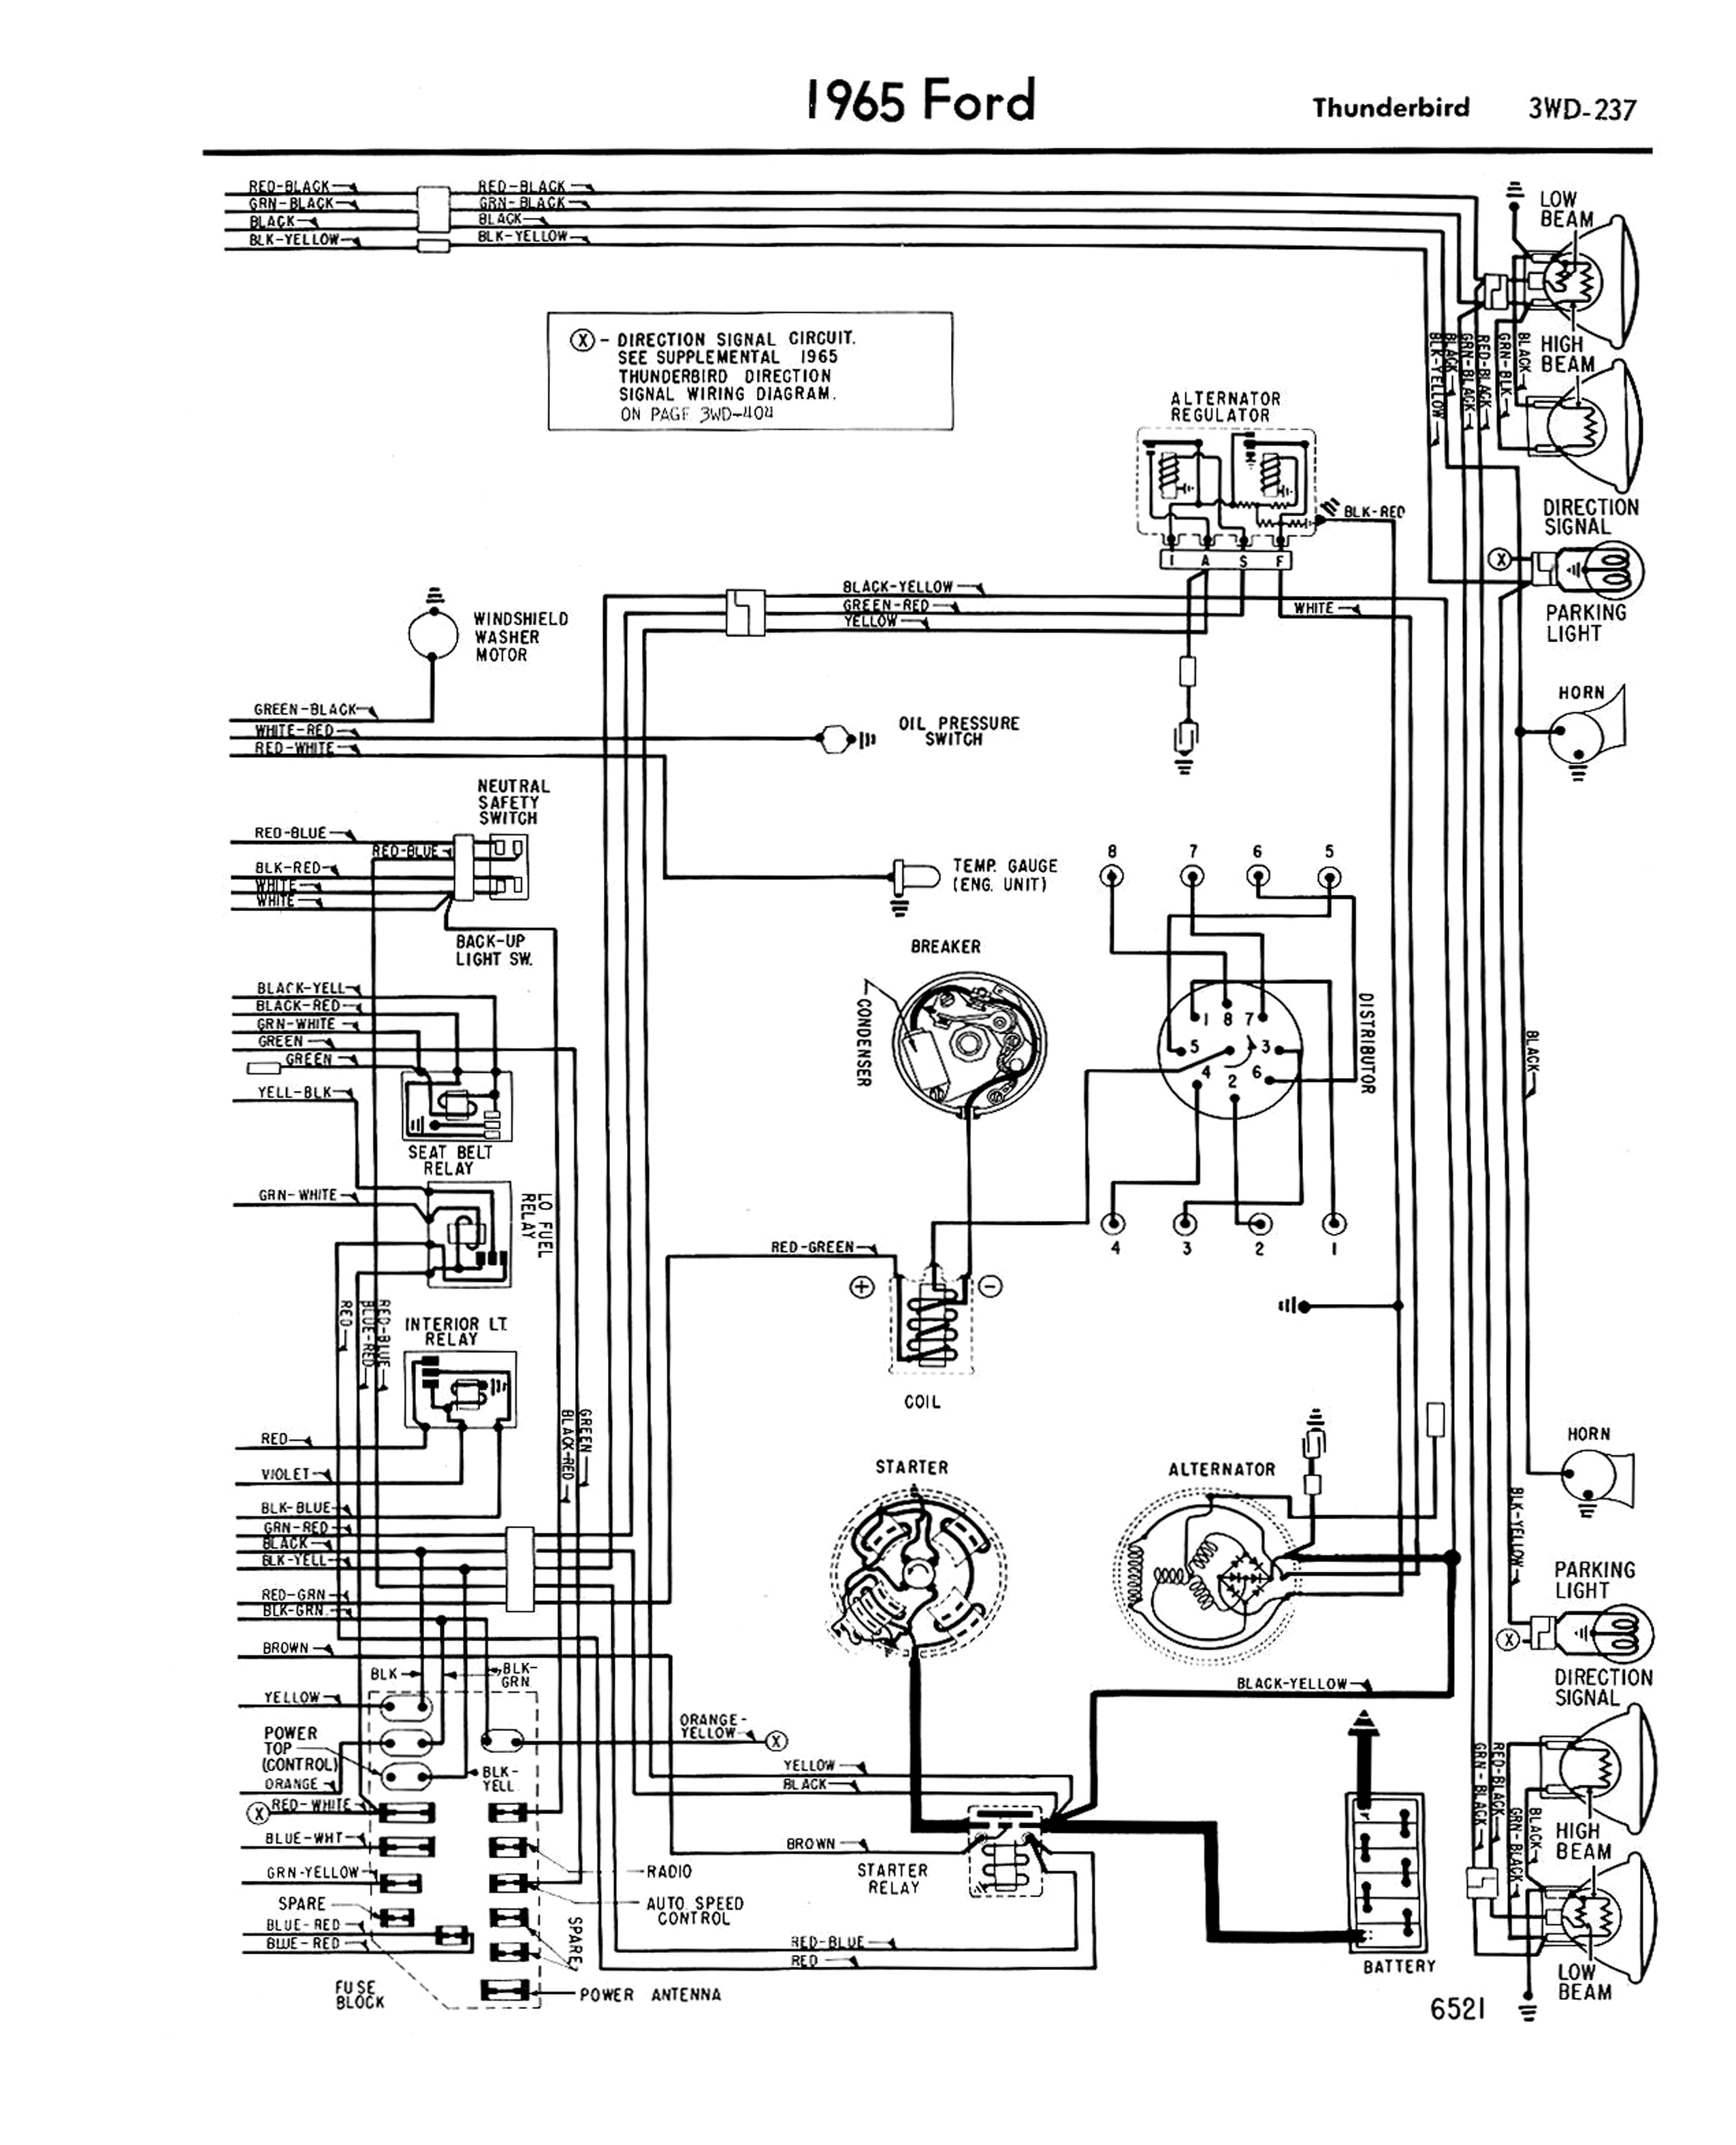 72 ford f100 dash wiring diagram rover 75 srs 1946 truck best library chevy likewise 1951 f1 custom moreover 2008 1958